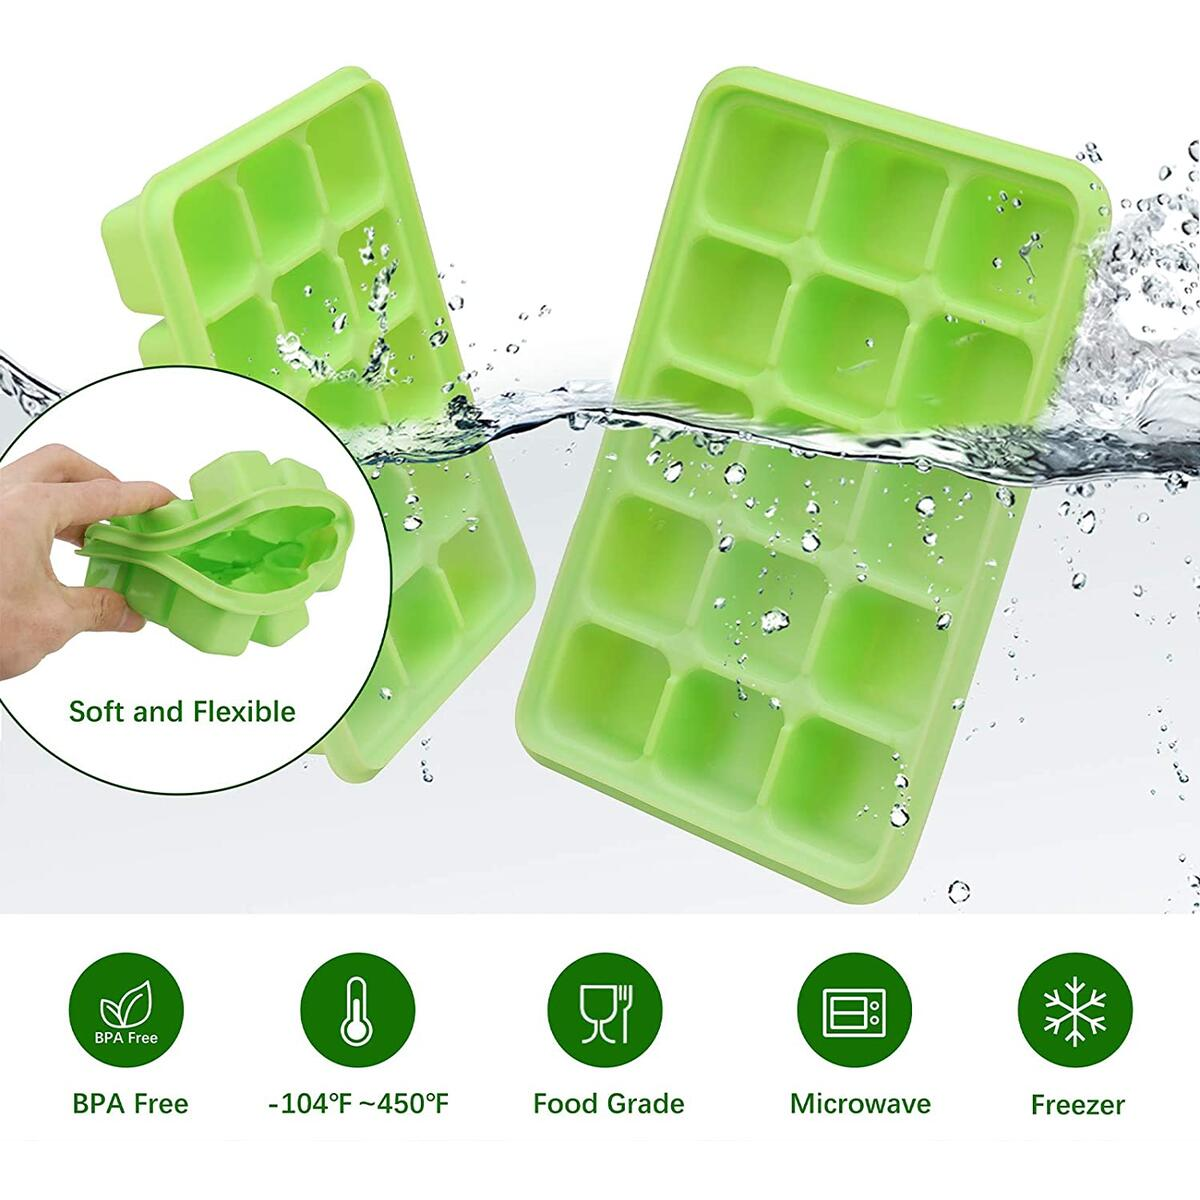 Ice Cube Trays - UTAKE 15-Ice Trays Easy-Release and Flexible with Removable Lid Ice Cube Molds Silicone for Whiskey, Cocktail, BPA free, Durable Stackable Ice Cube Tray 2 Pack Green